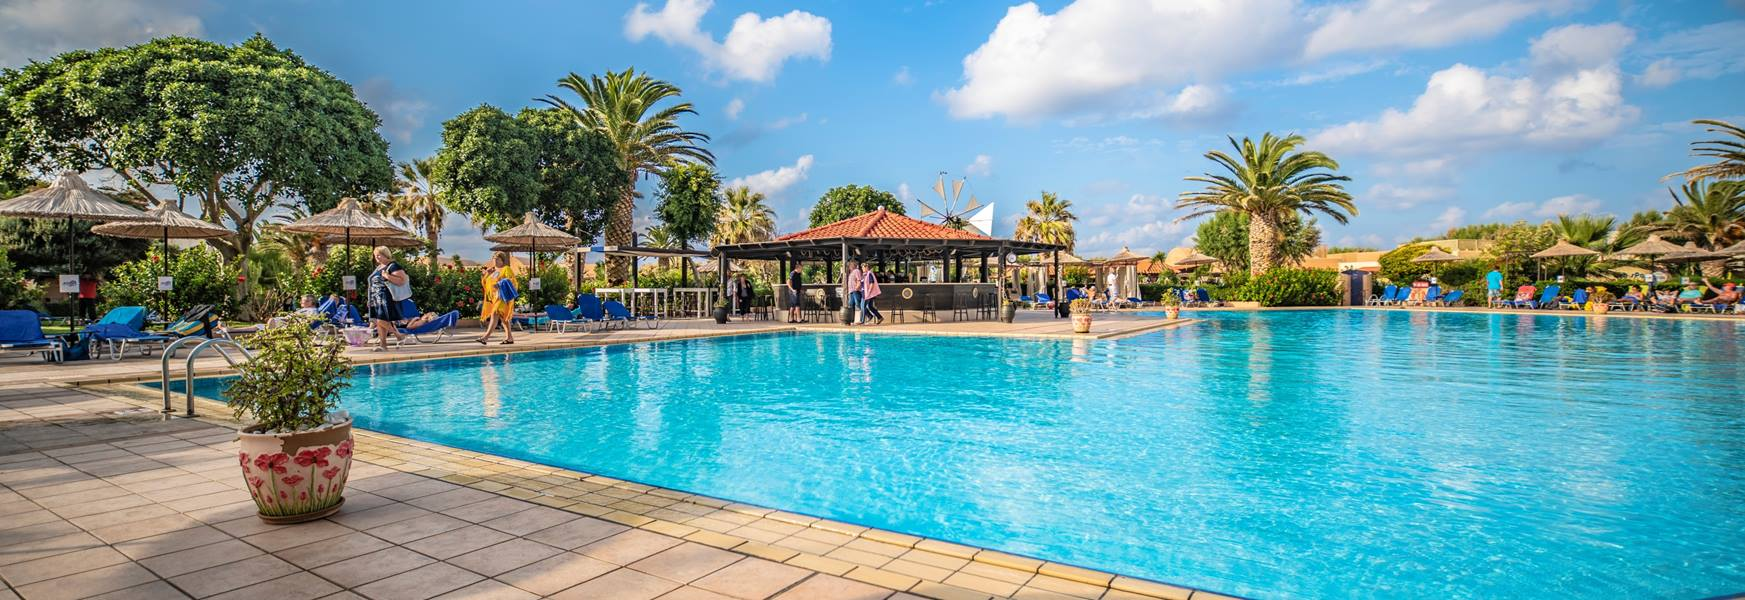 Hotel Anissa Beach Resort